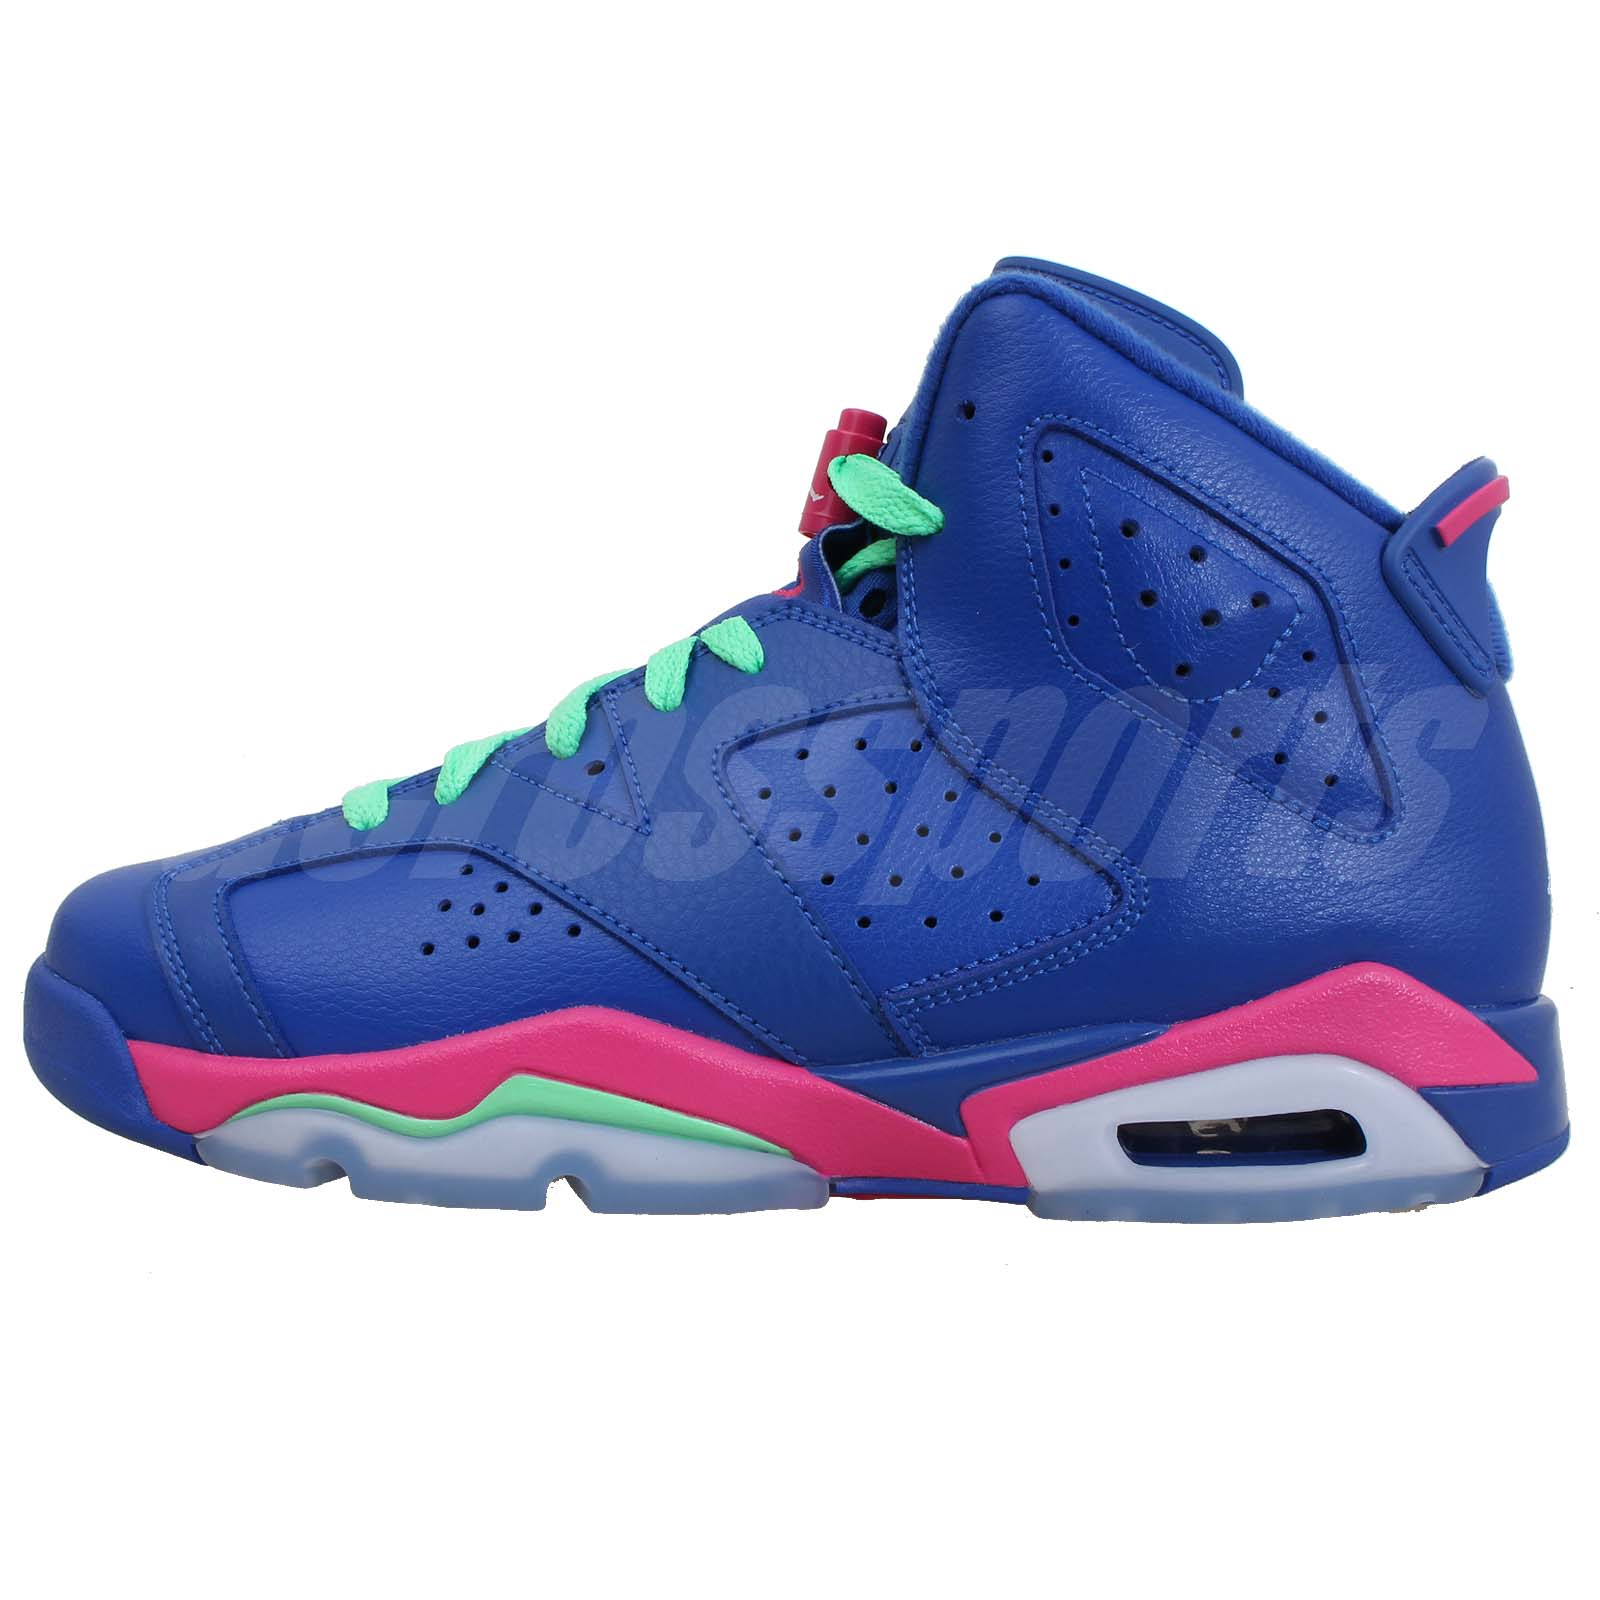 nike air jordan 6 retro gg gs girls youth 2014 blue pink